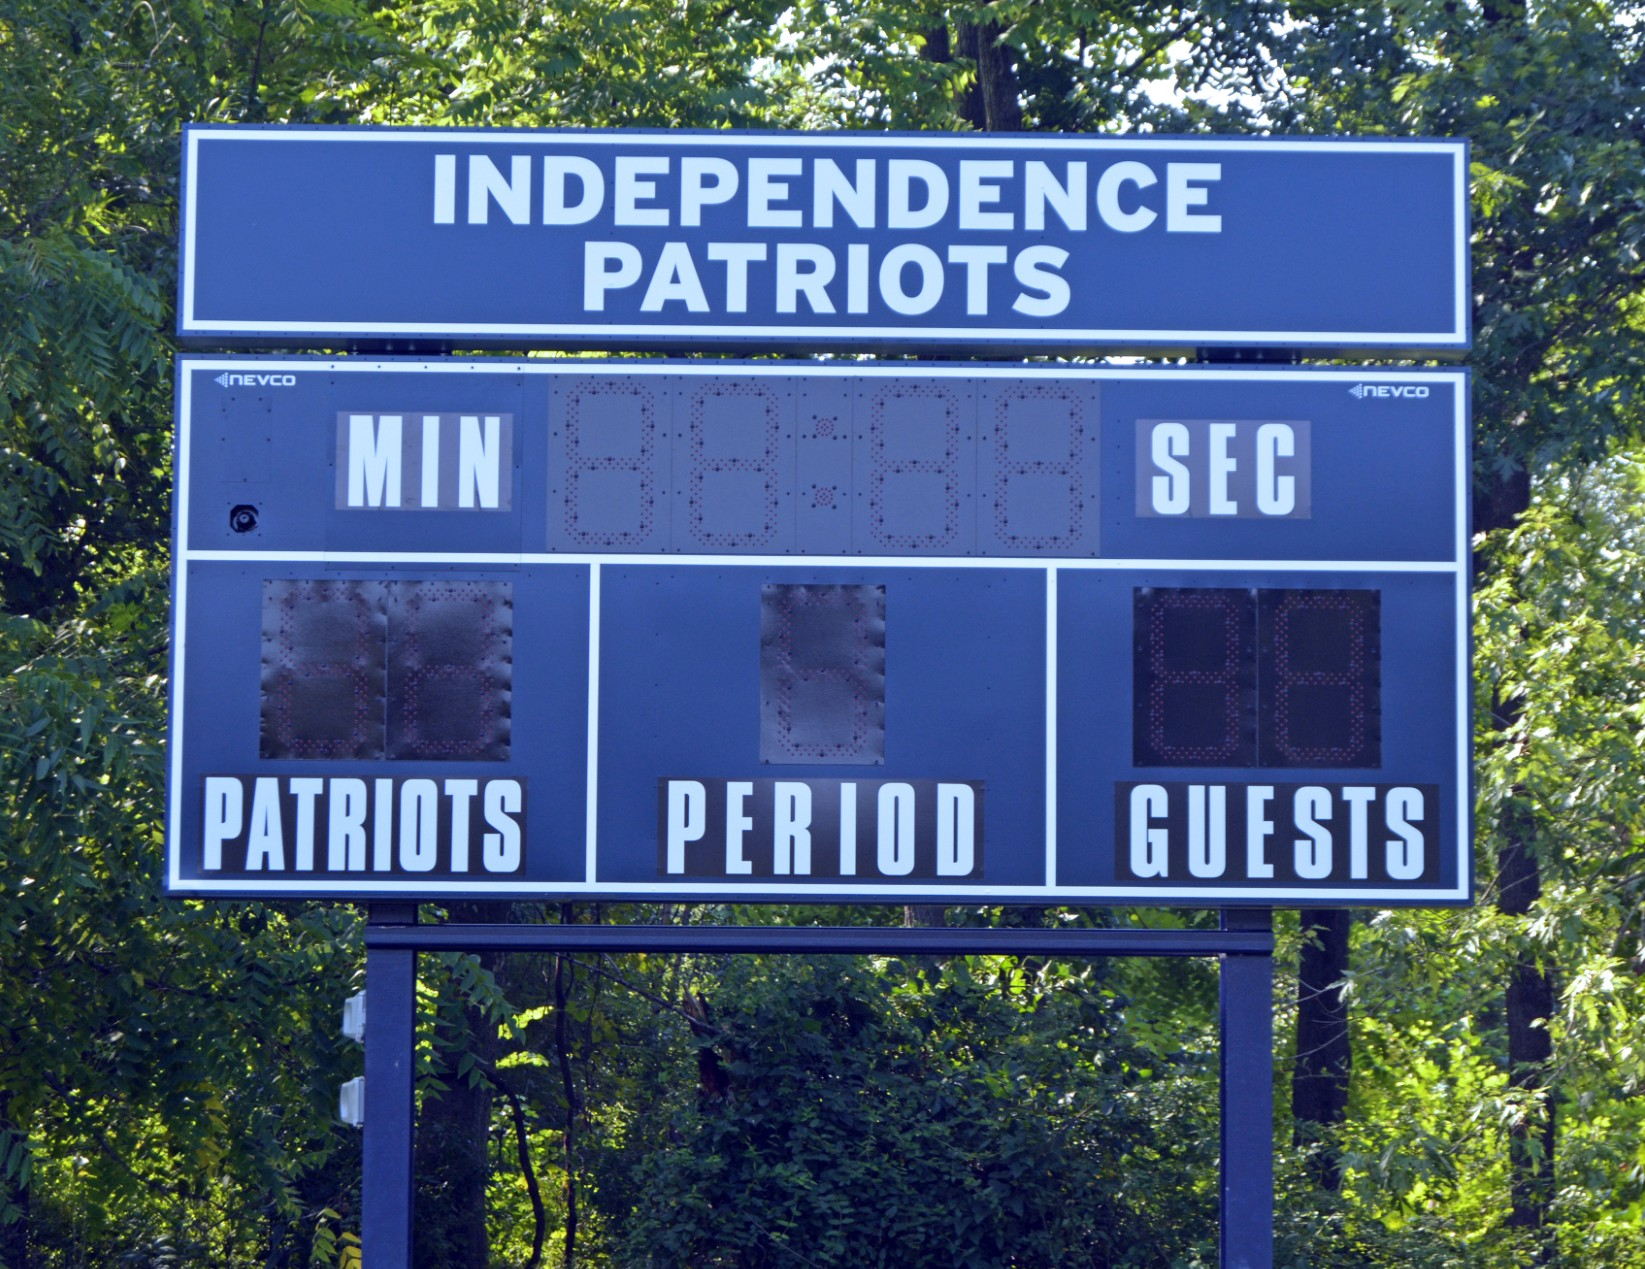 For 1st time in school's 40-year history, Indy adds outdoor scoreboards